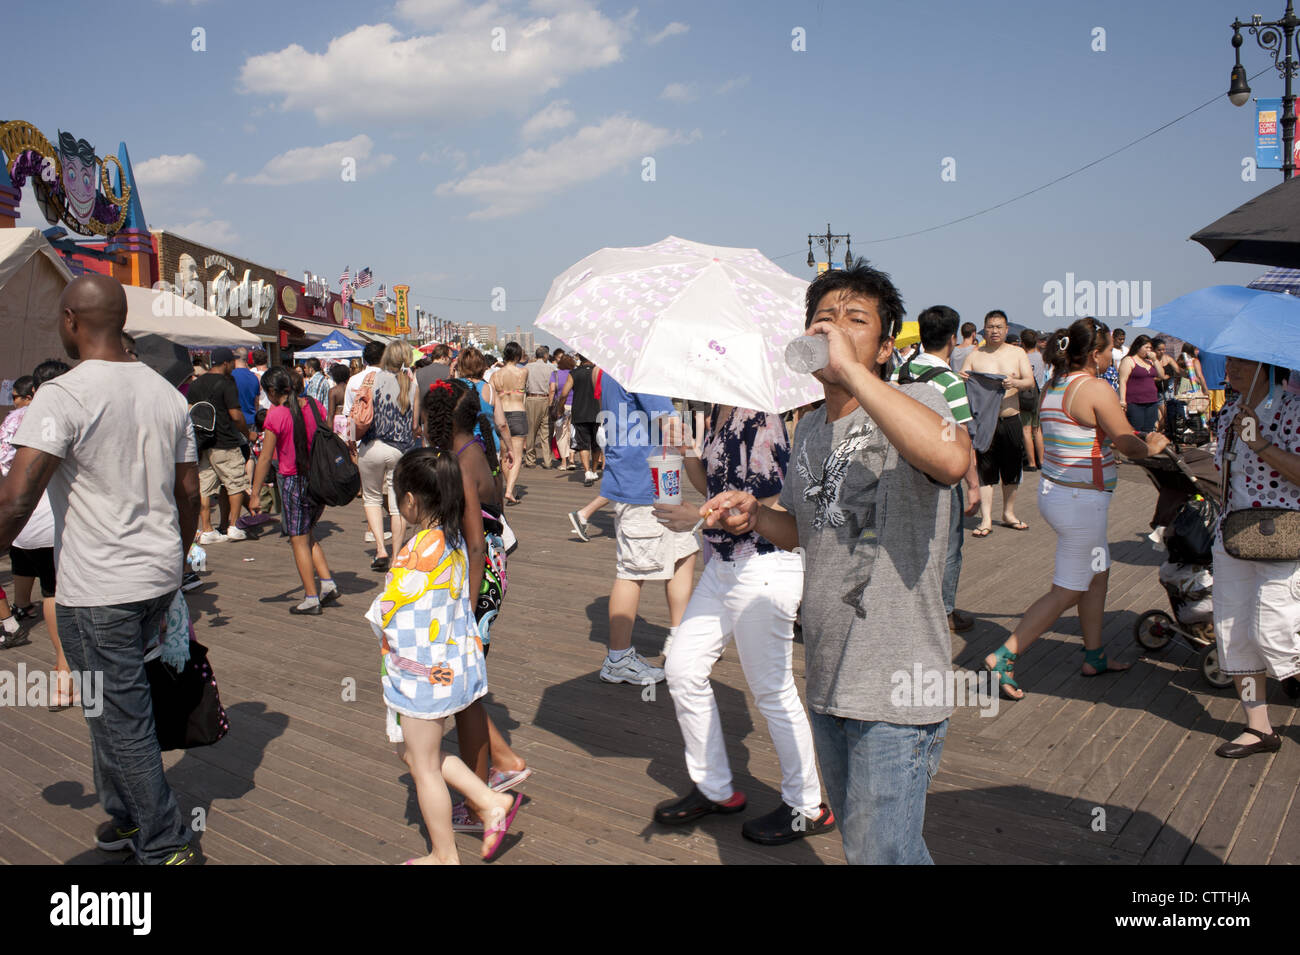 Fourth of July at Coney Island. - Stock Image